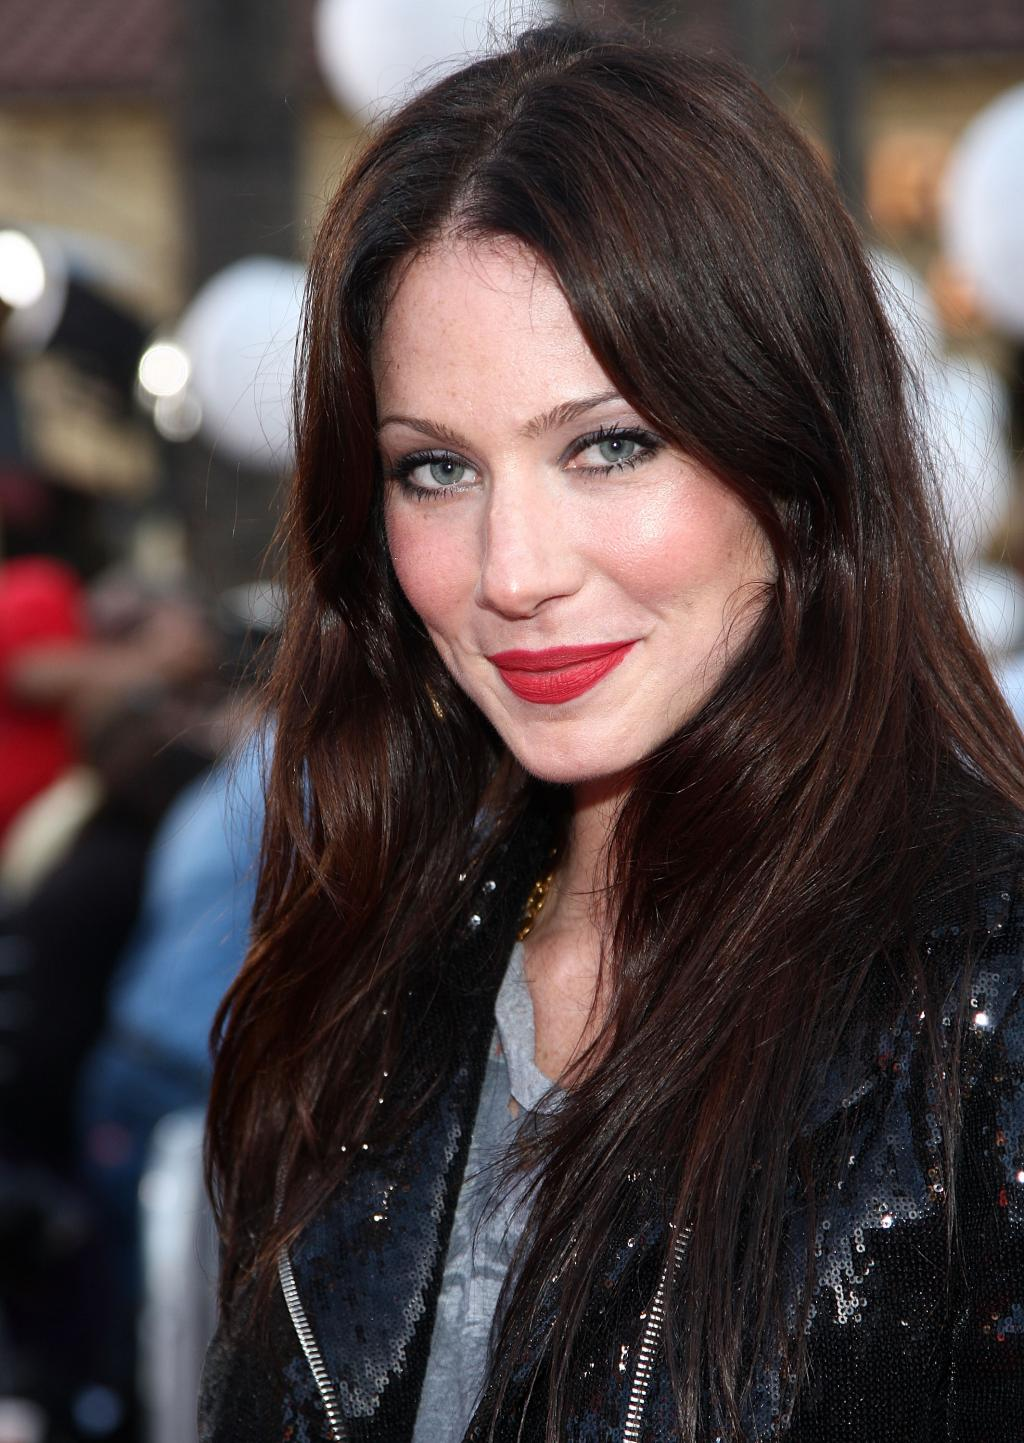 Lynn Collins Photo, Pics, Wallpaper - Photo